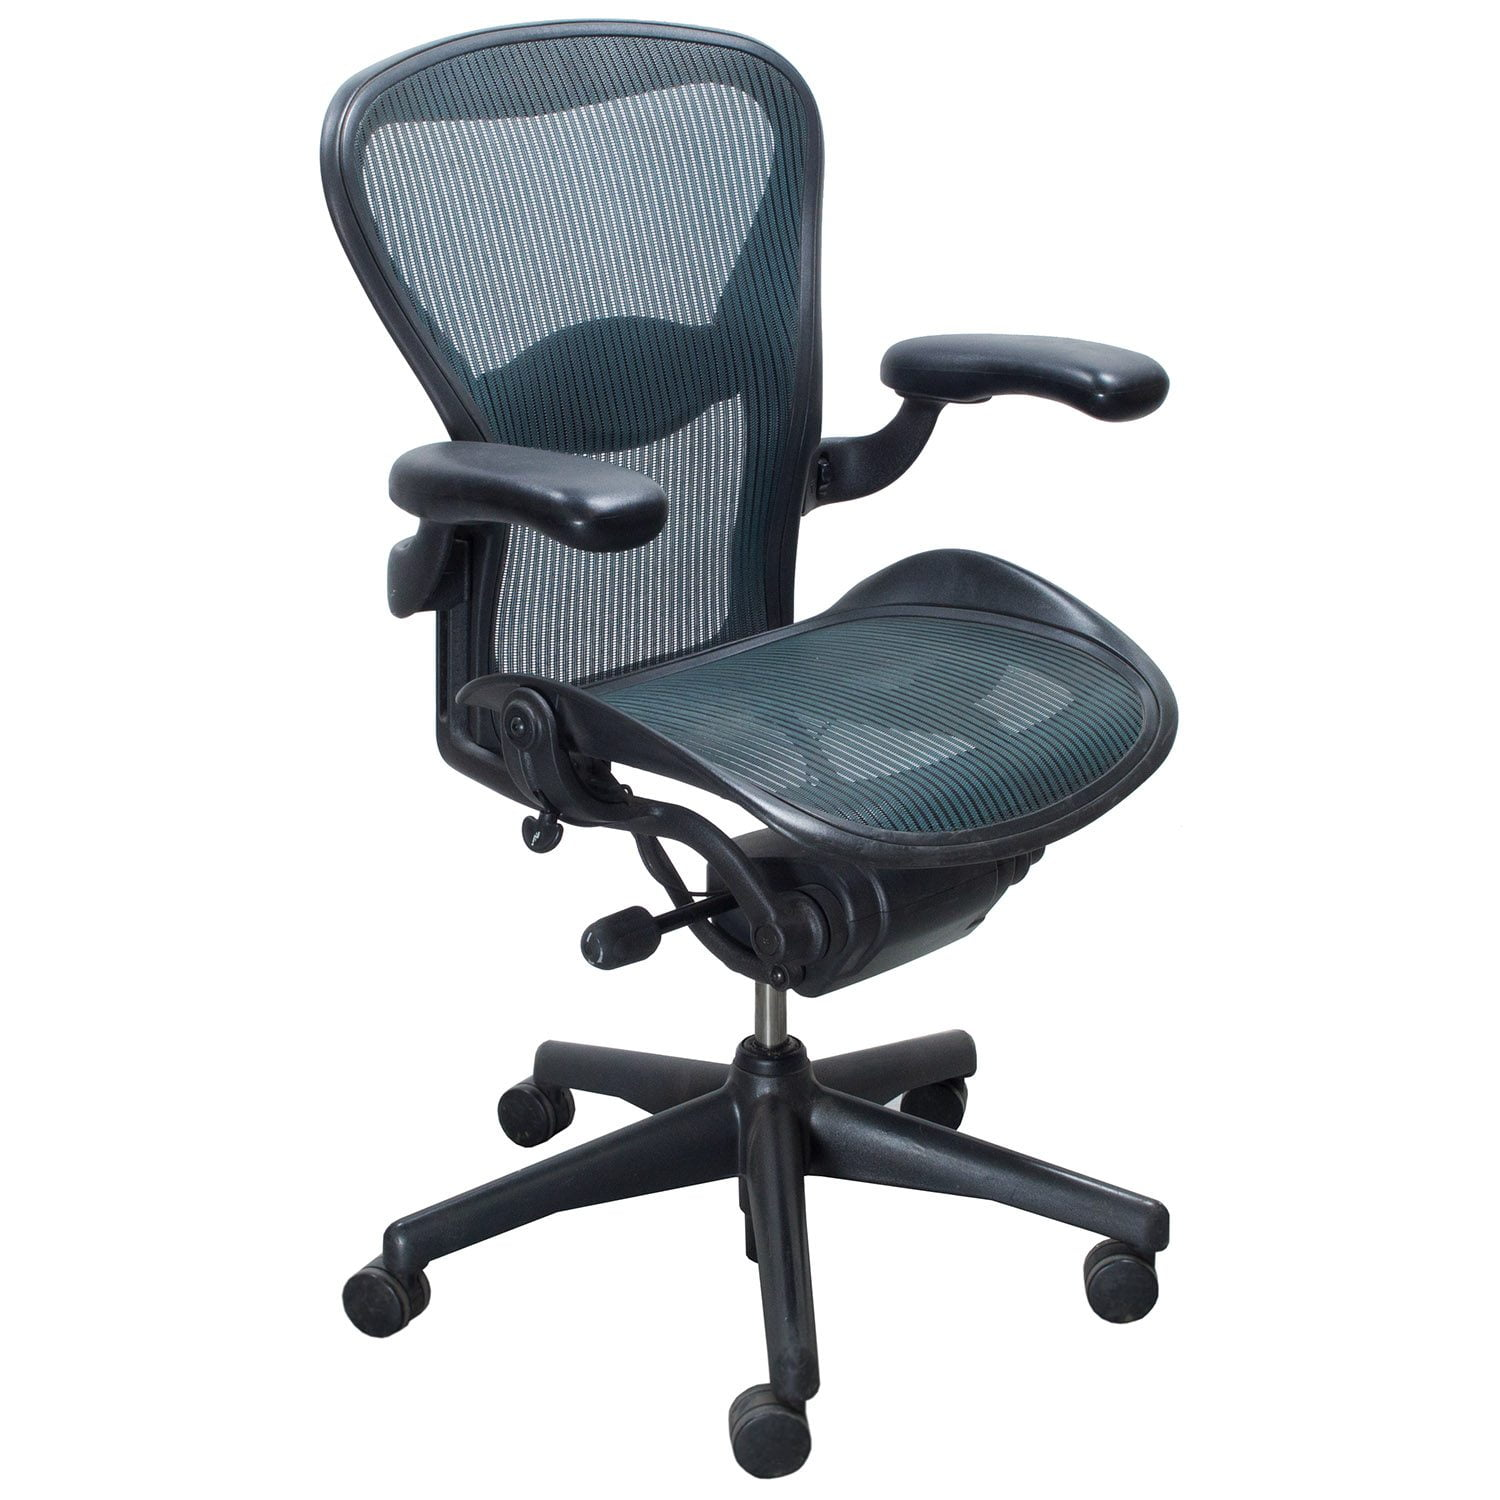 aeron chair sizes covers for sale in johannesburg herman miller used size b task tourmaline